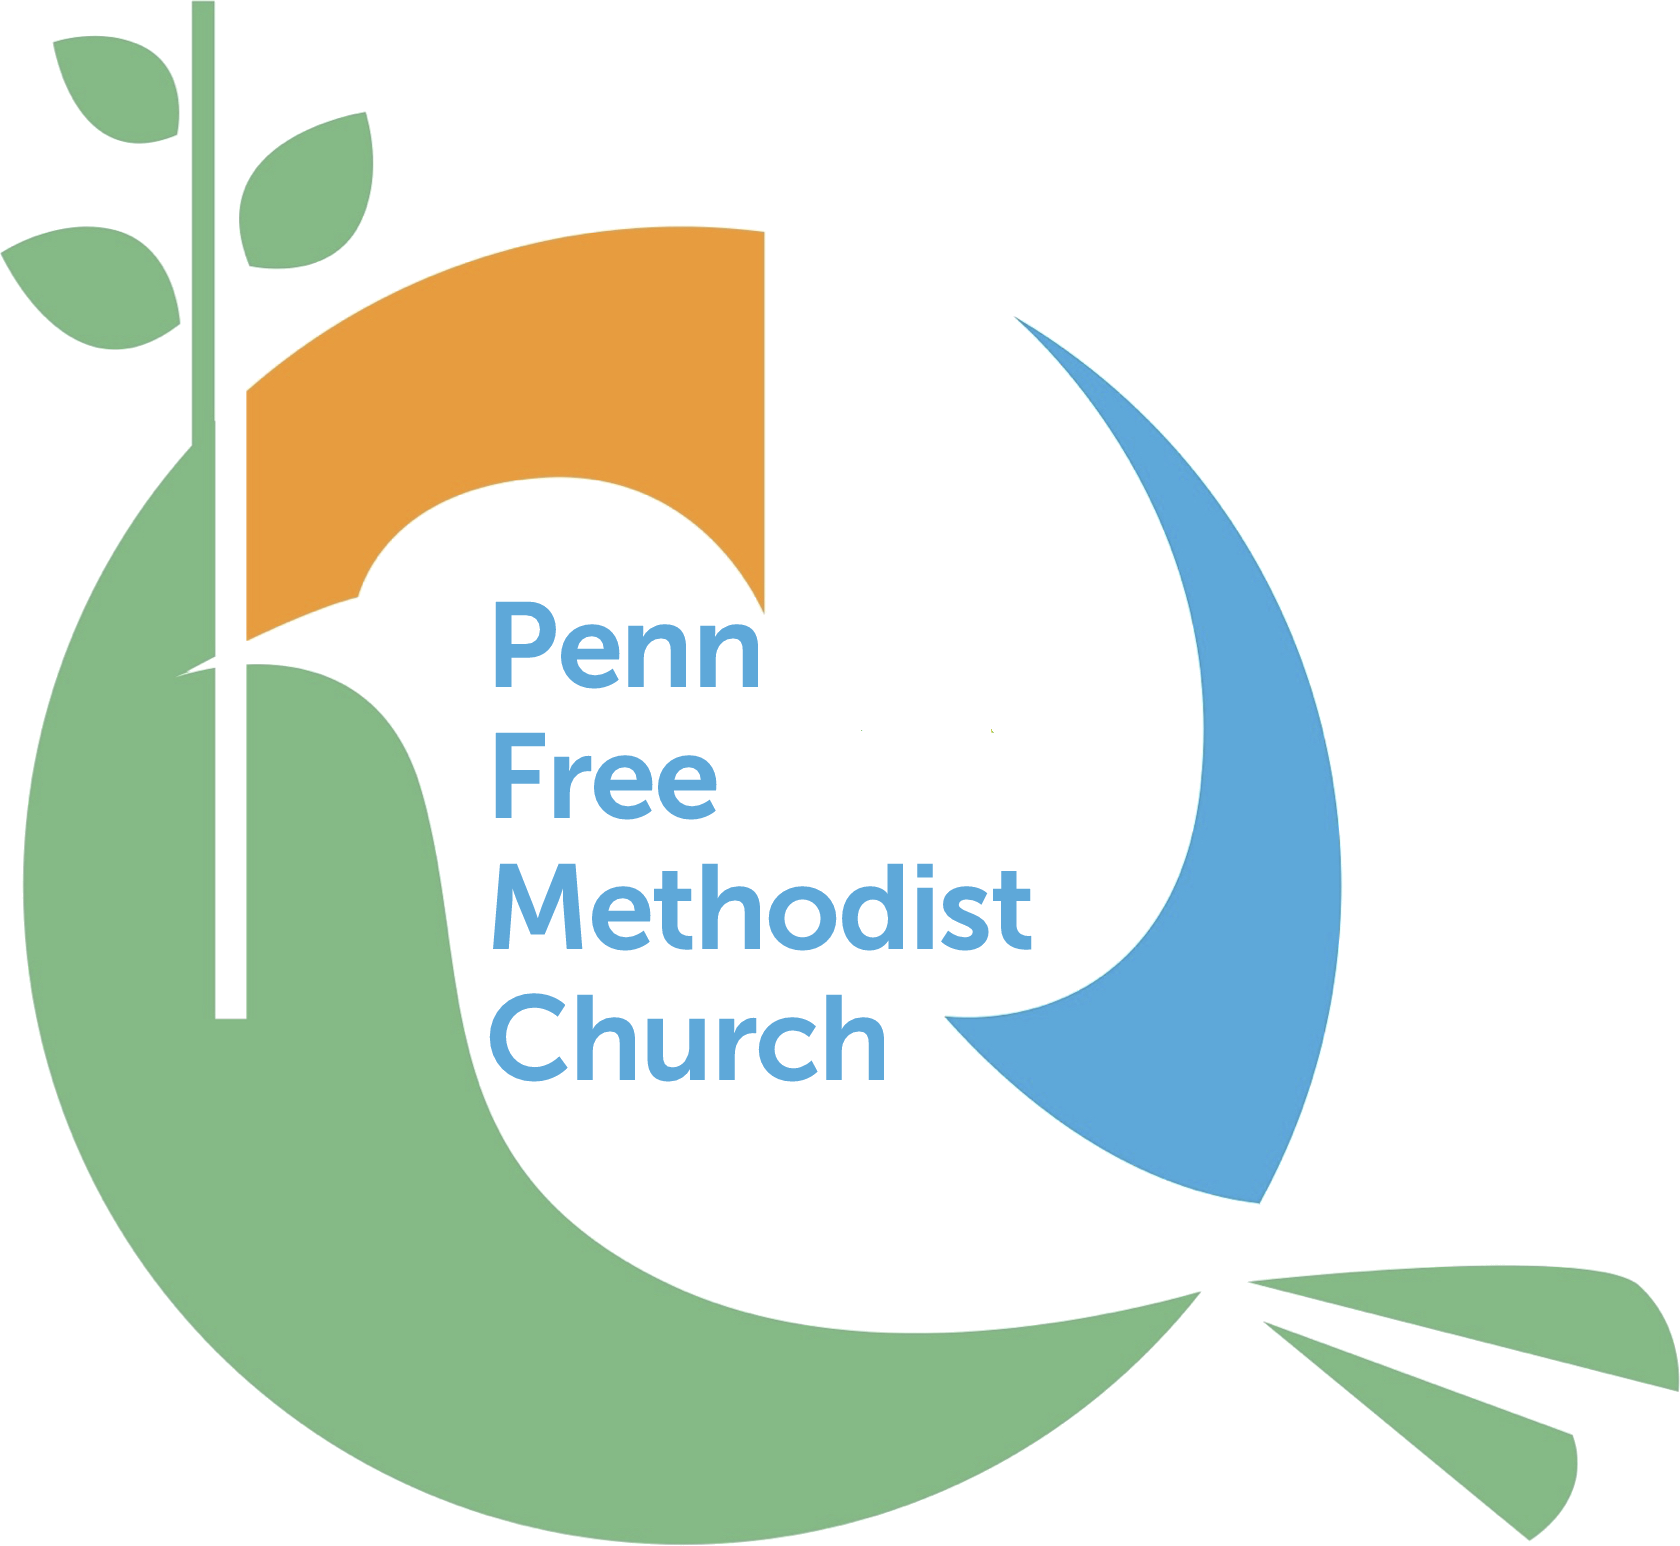 Penn Free Methodist Church